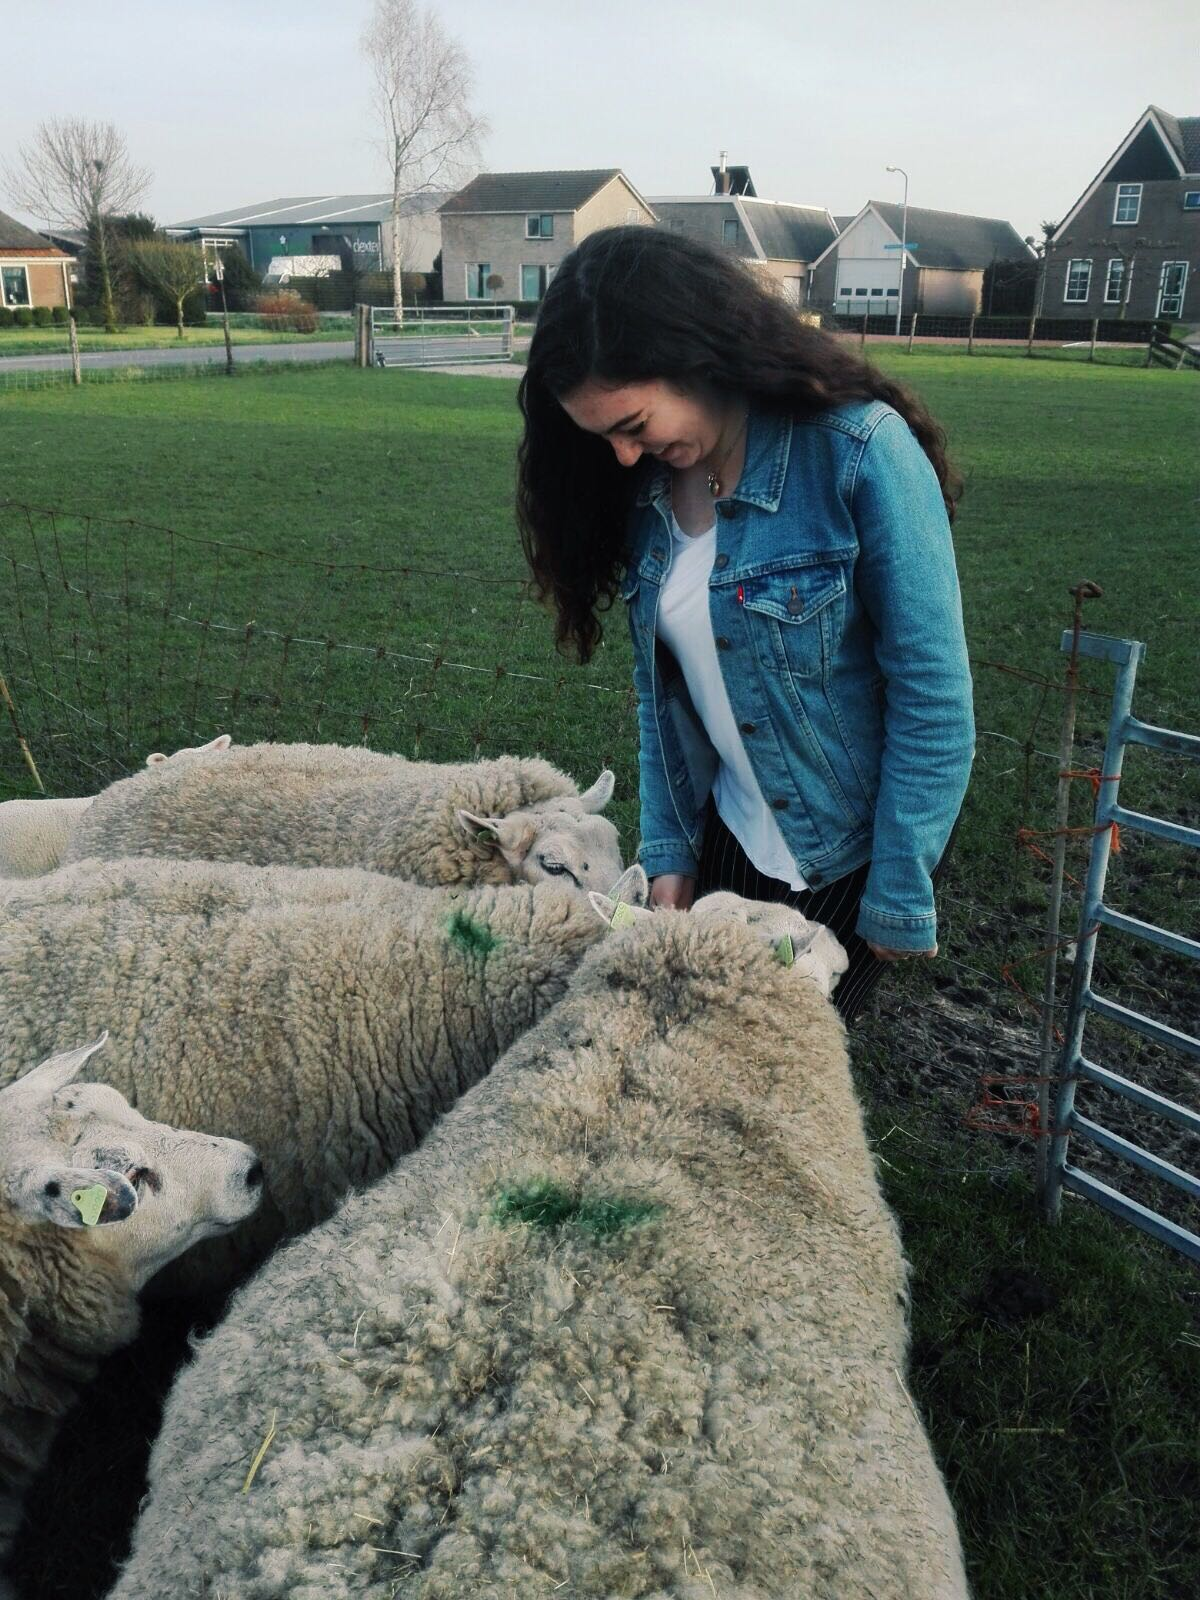 me and some wooly friends!